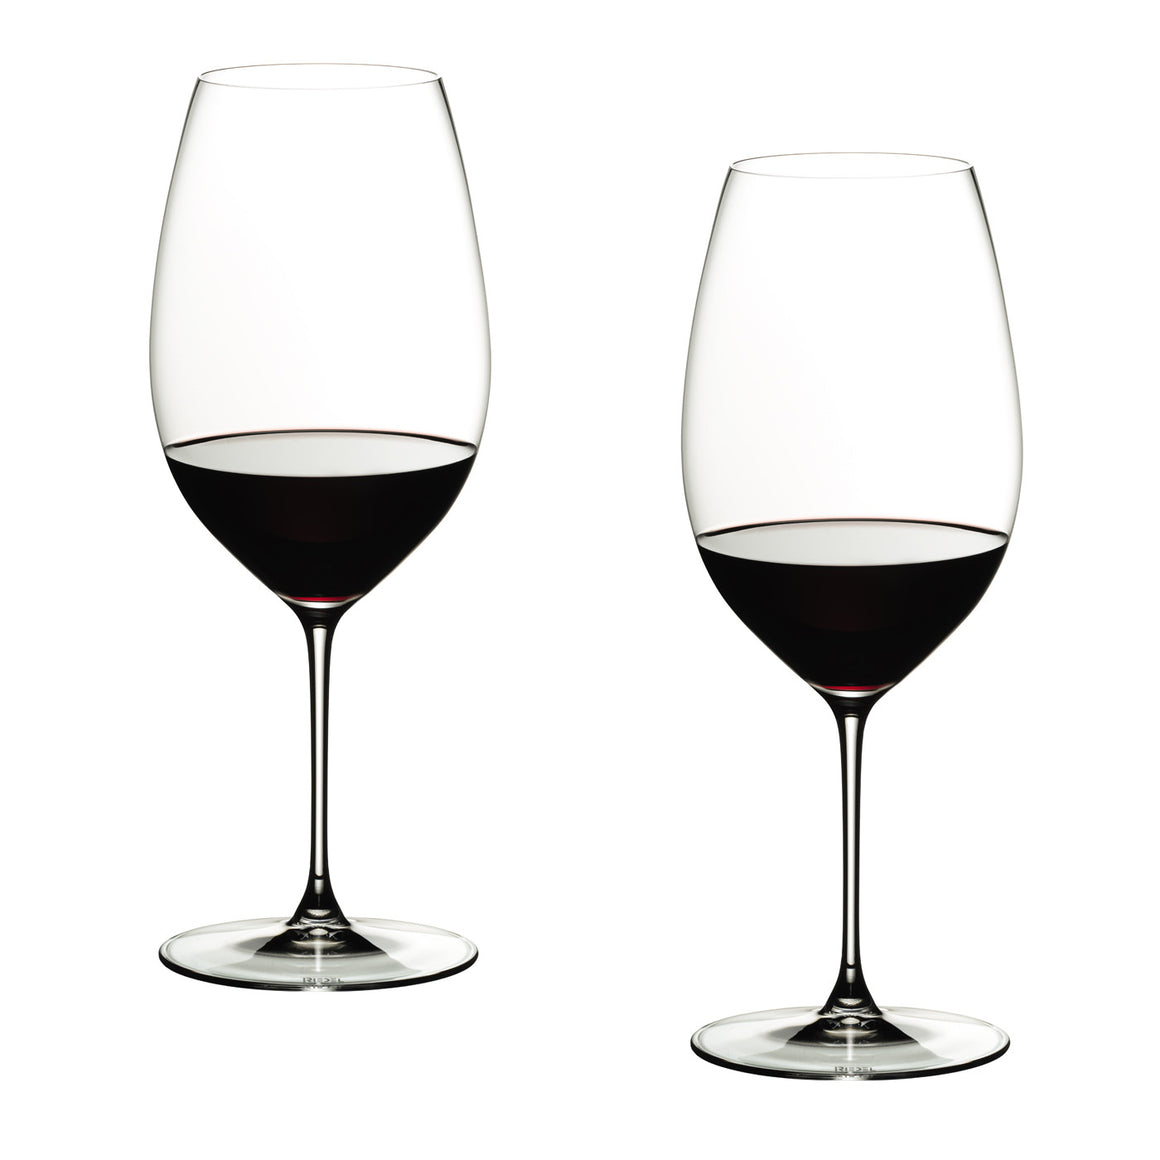 Riedel Veritas New World Shiraz Glass (Pair)